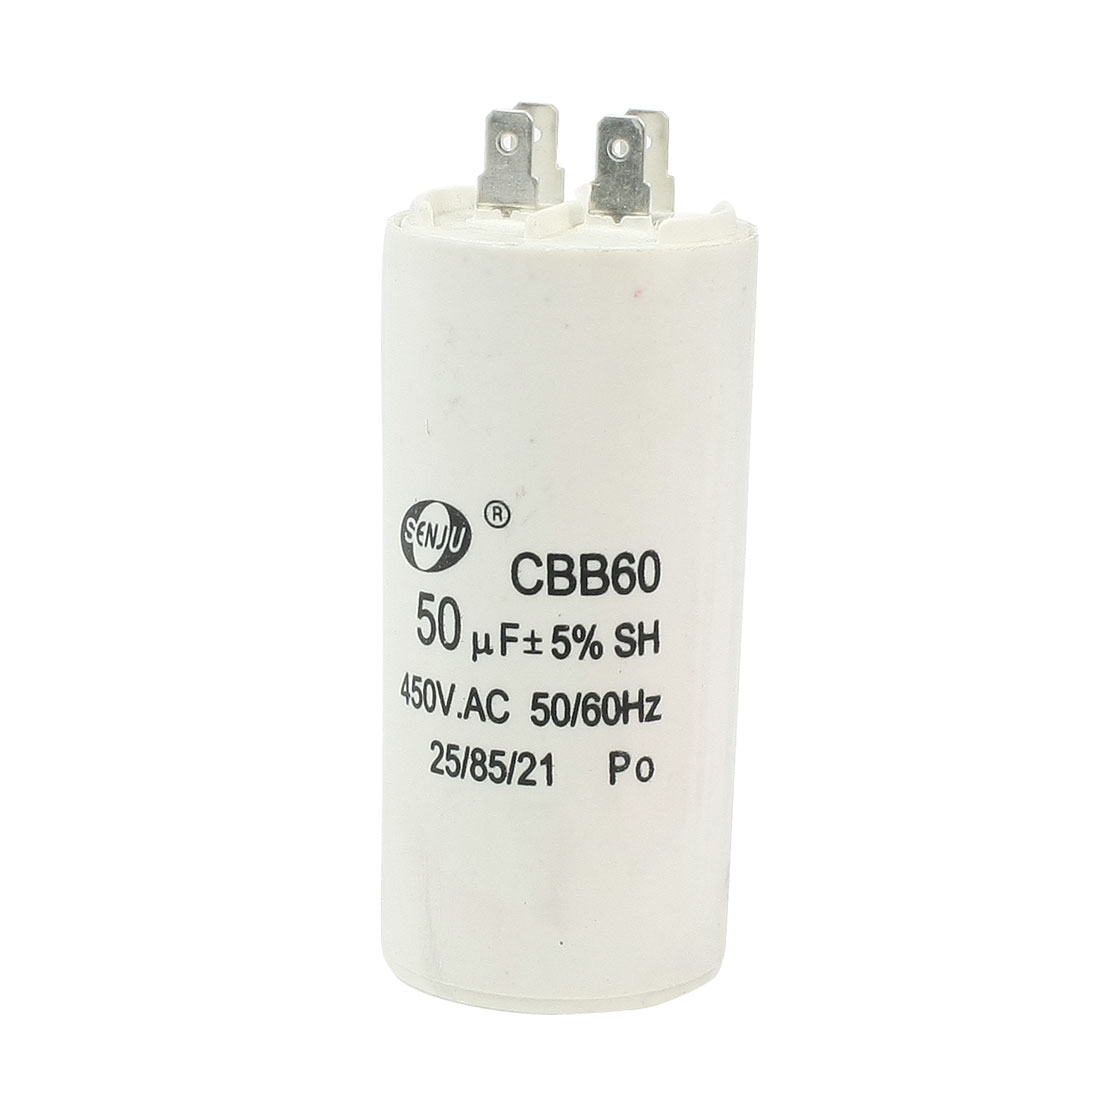 Washing Machine CBB60 Nonpolar Motor Running Capacitor AC 450V 50uF 50/60Hz